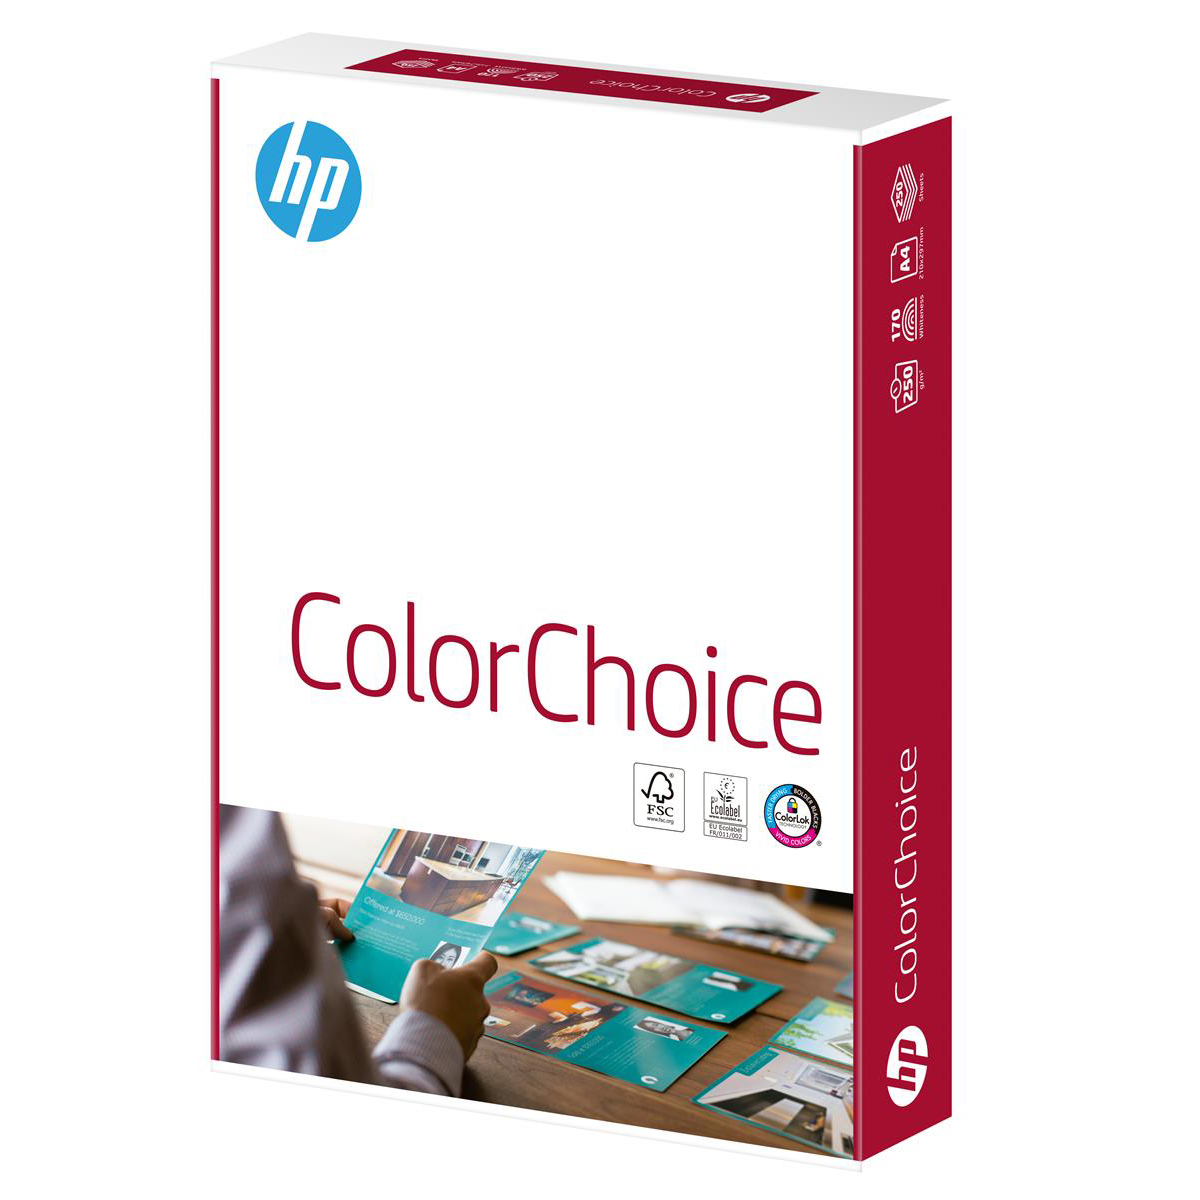 Hewlett Packard HP Color Choice Card Smooth FSC Colorlok 200gsm A4 White Ref 94301 250 Sheets